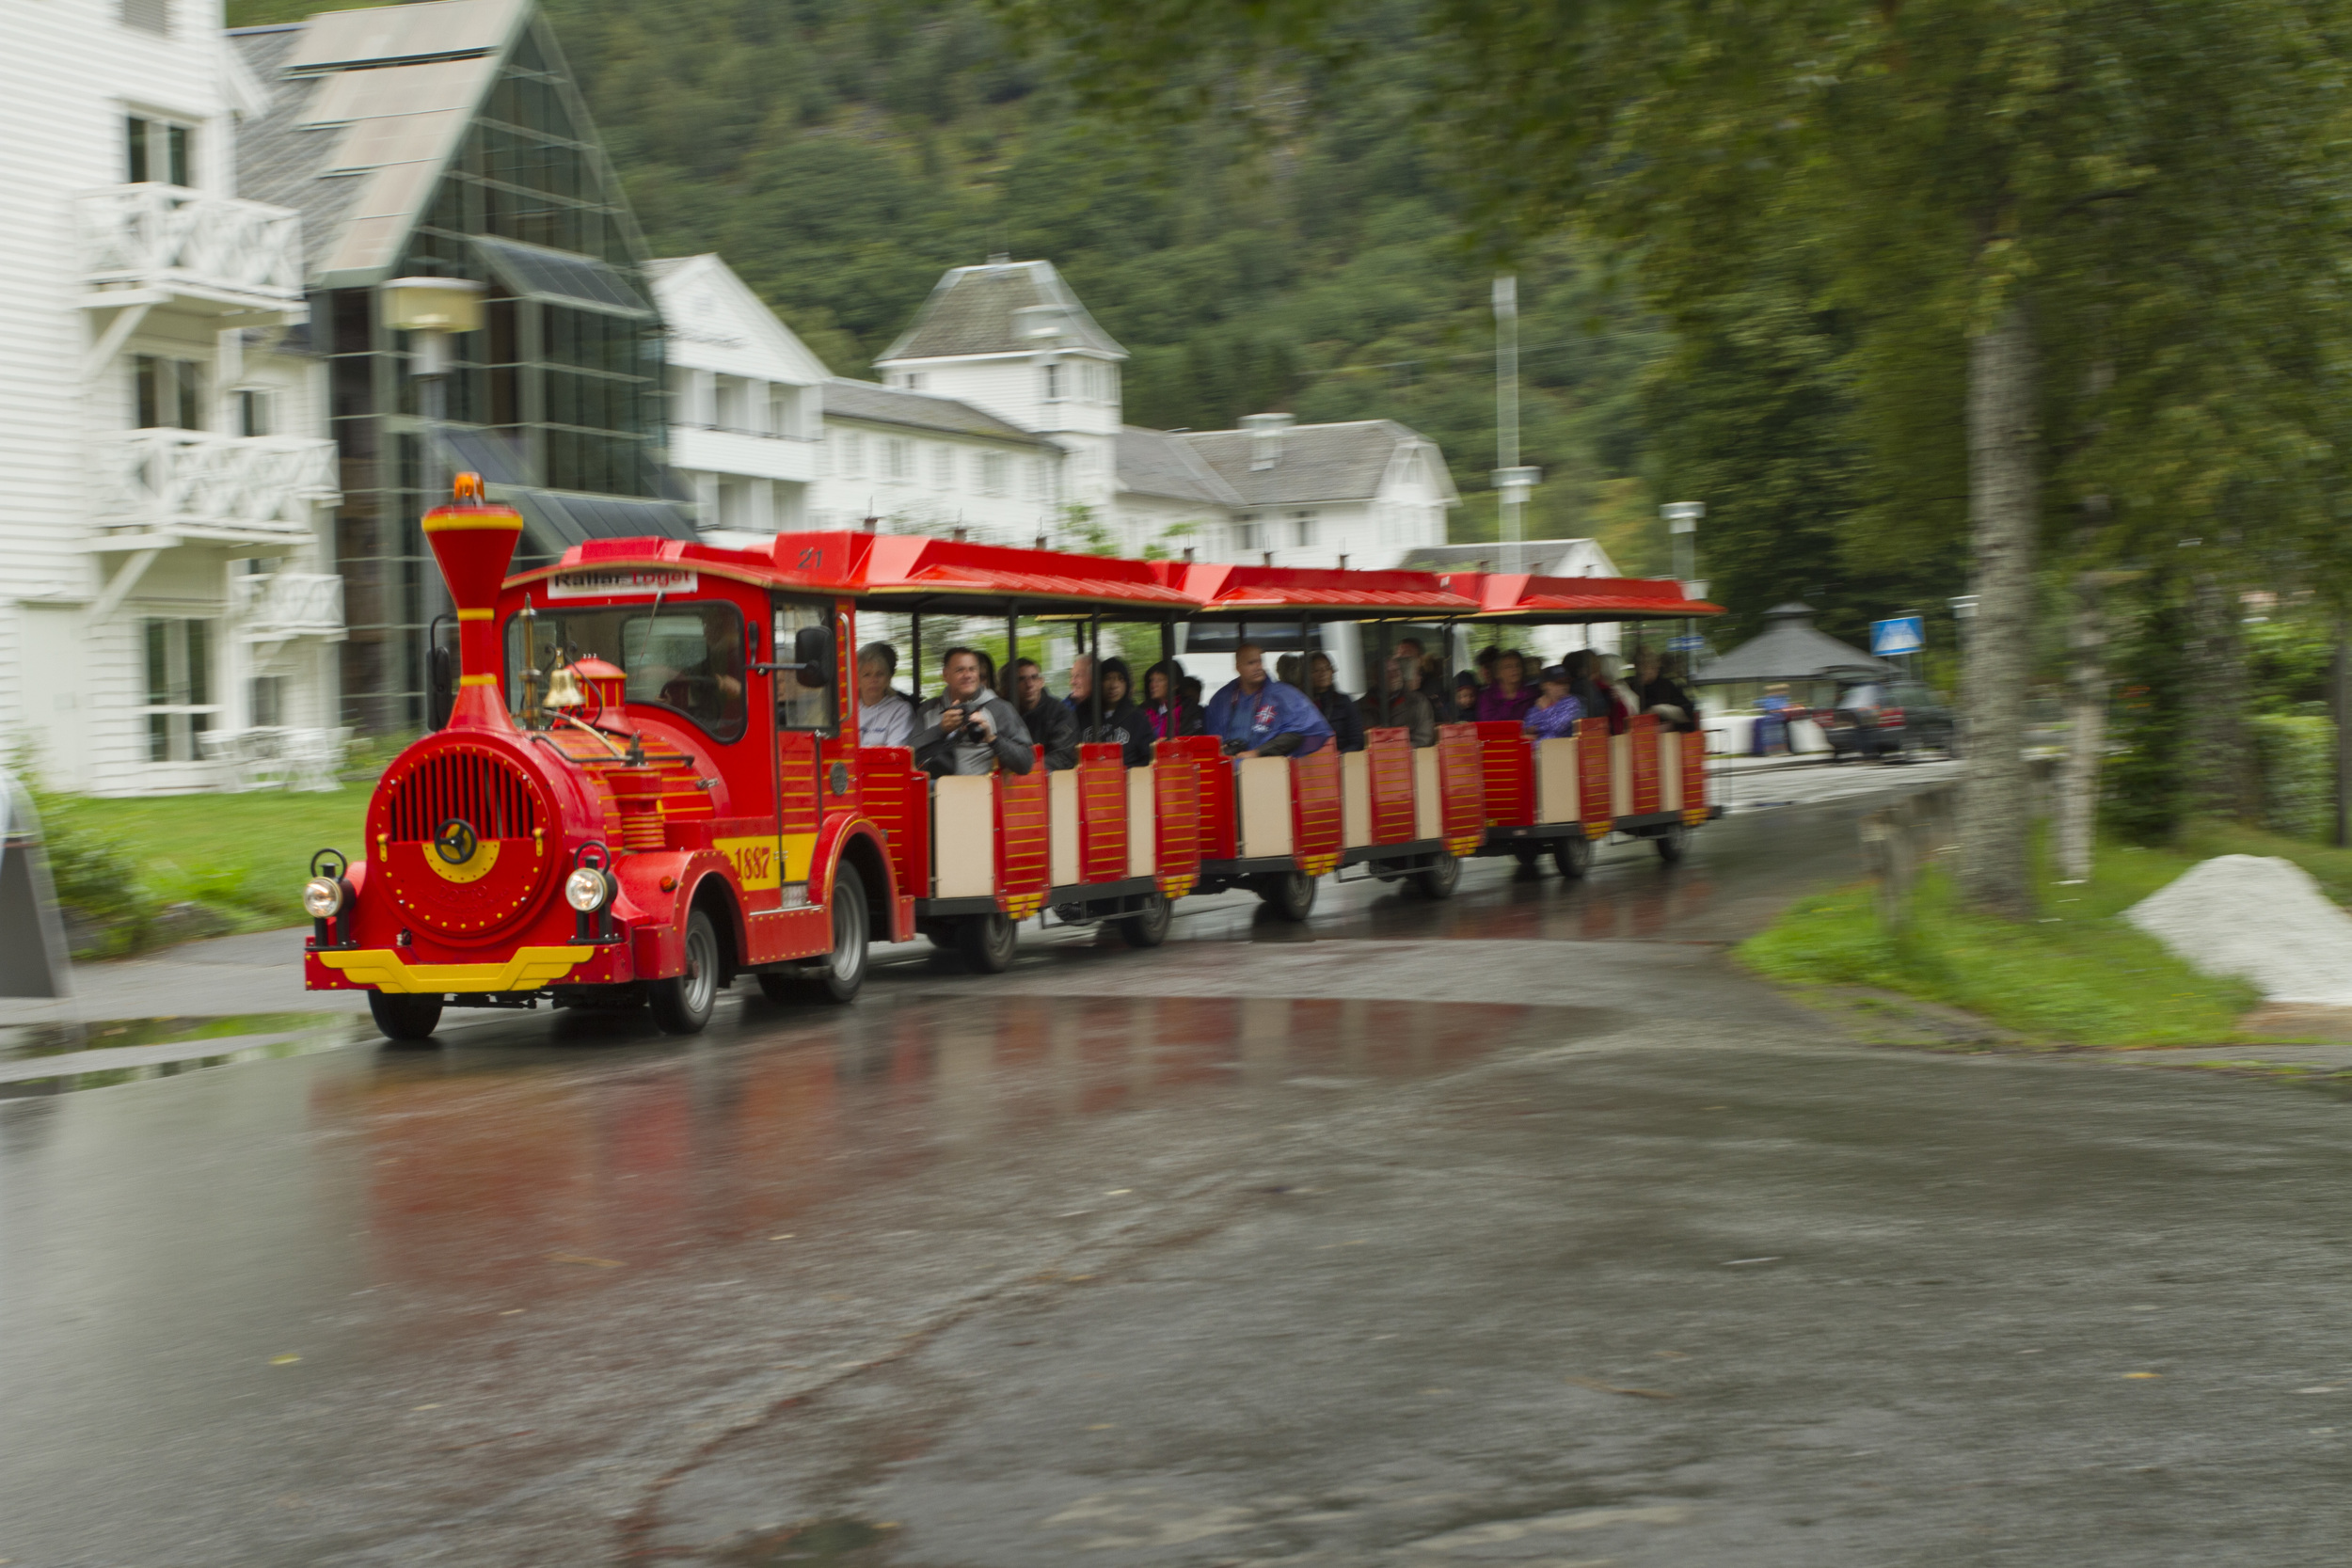 7. This final image is a reference to how tourism could damage Flam's sense of place. A bright red pad train transports sightseeing tourists to the next photo opportunity. The colour of the train dominates the photograph. By following its movement, whilst pressing the shutter button, I have blurred the scenery in the background, making it appear less significant. This is a reference to how tourism threats to harm Flam's unique, picturesque sense of place.